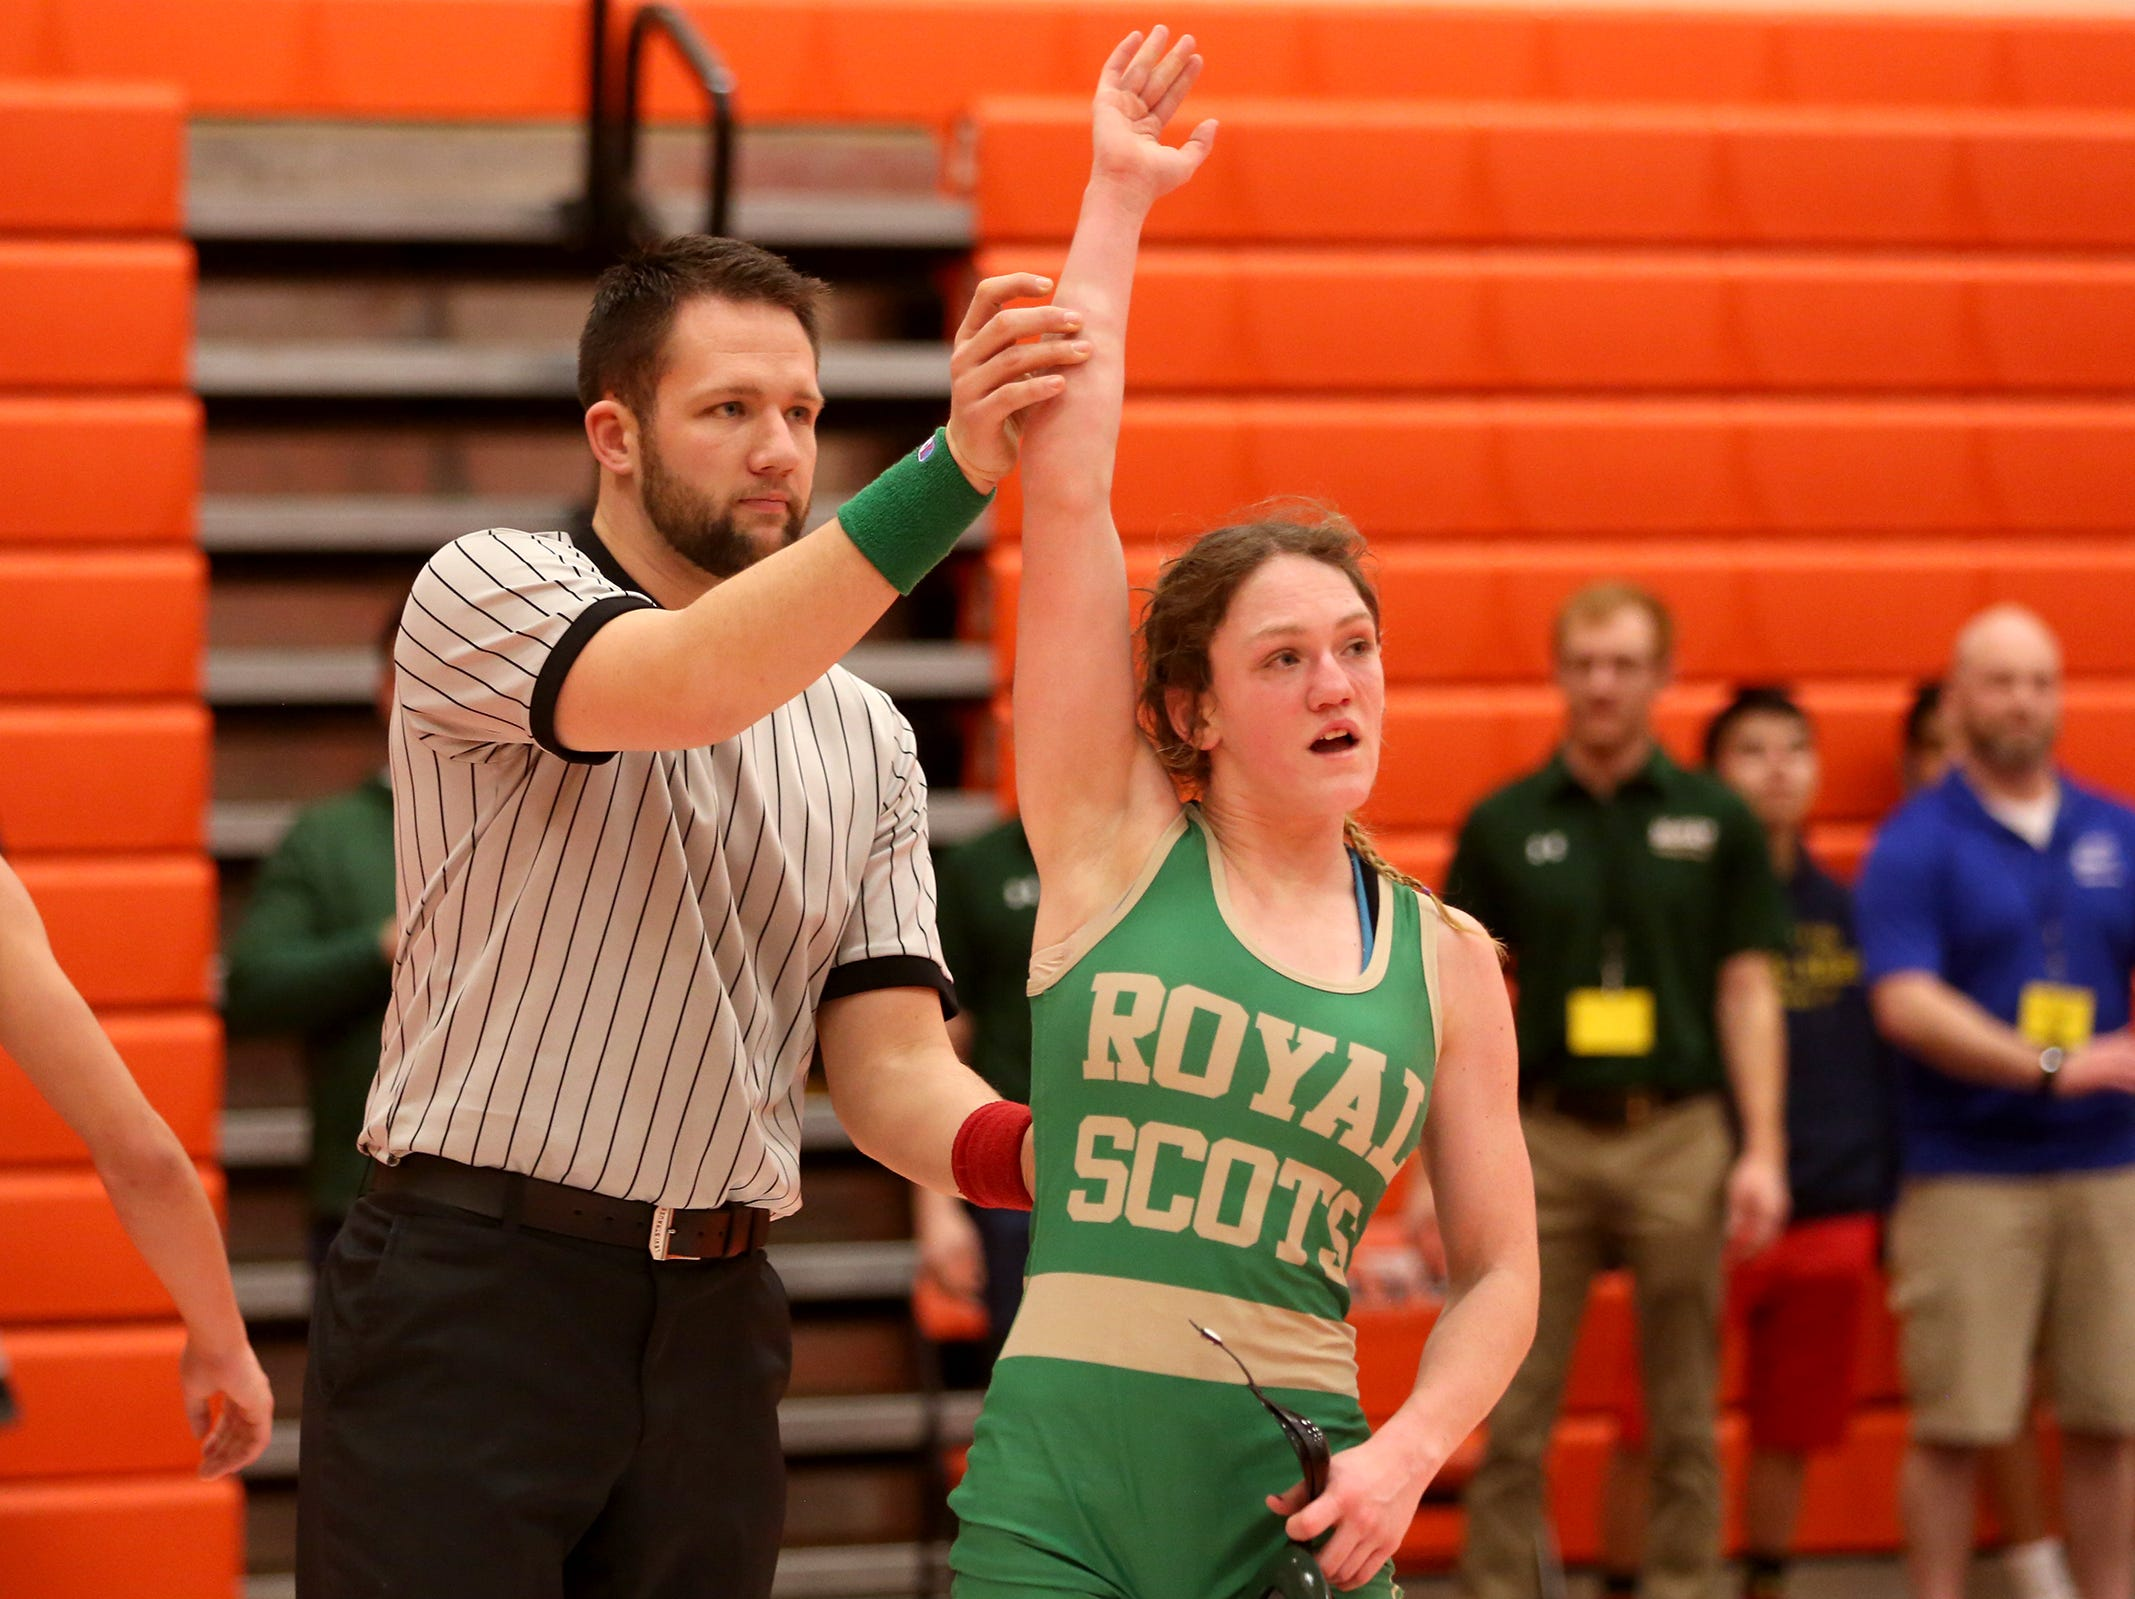 McKay's Tess Barnett wins her match in the 129 pound weight class during the Mountain Valley Conference district wrestling tournament at Sprague High School in Salem on Friday, Feb. 15, 2019.